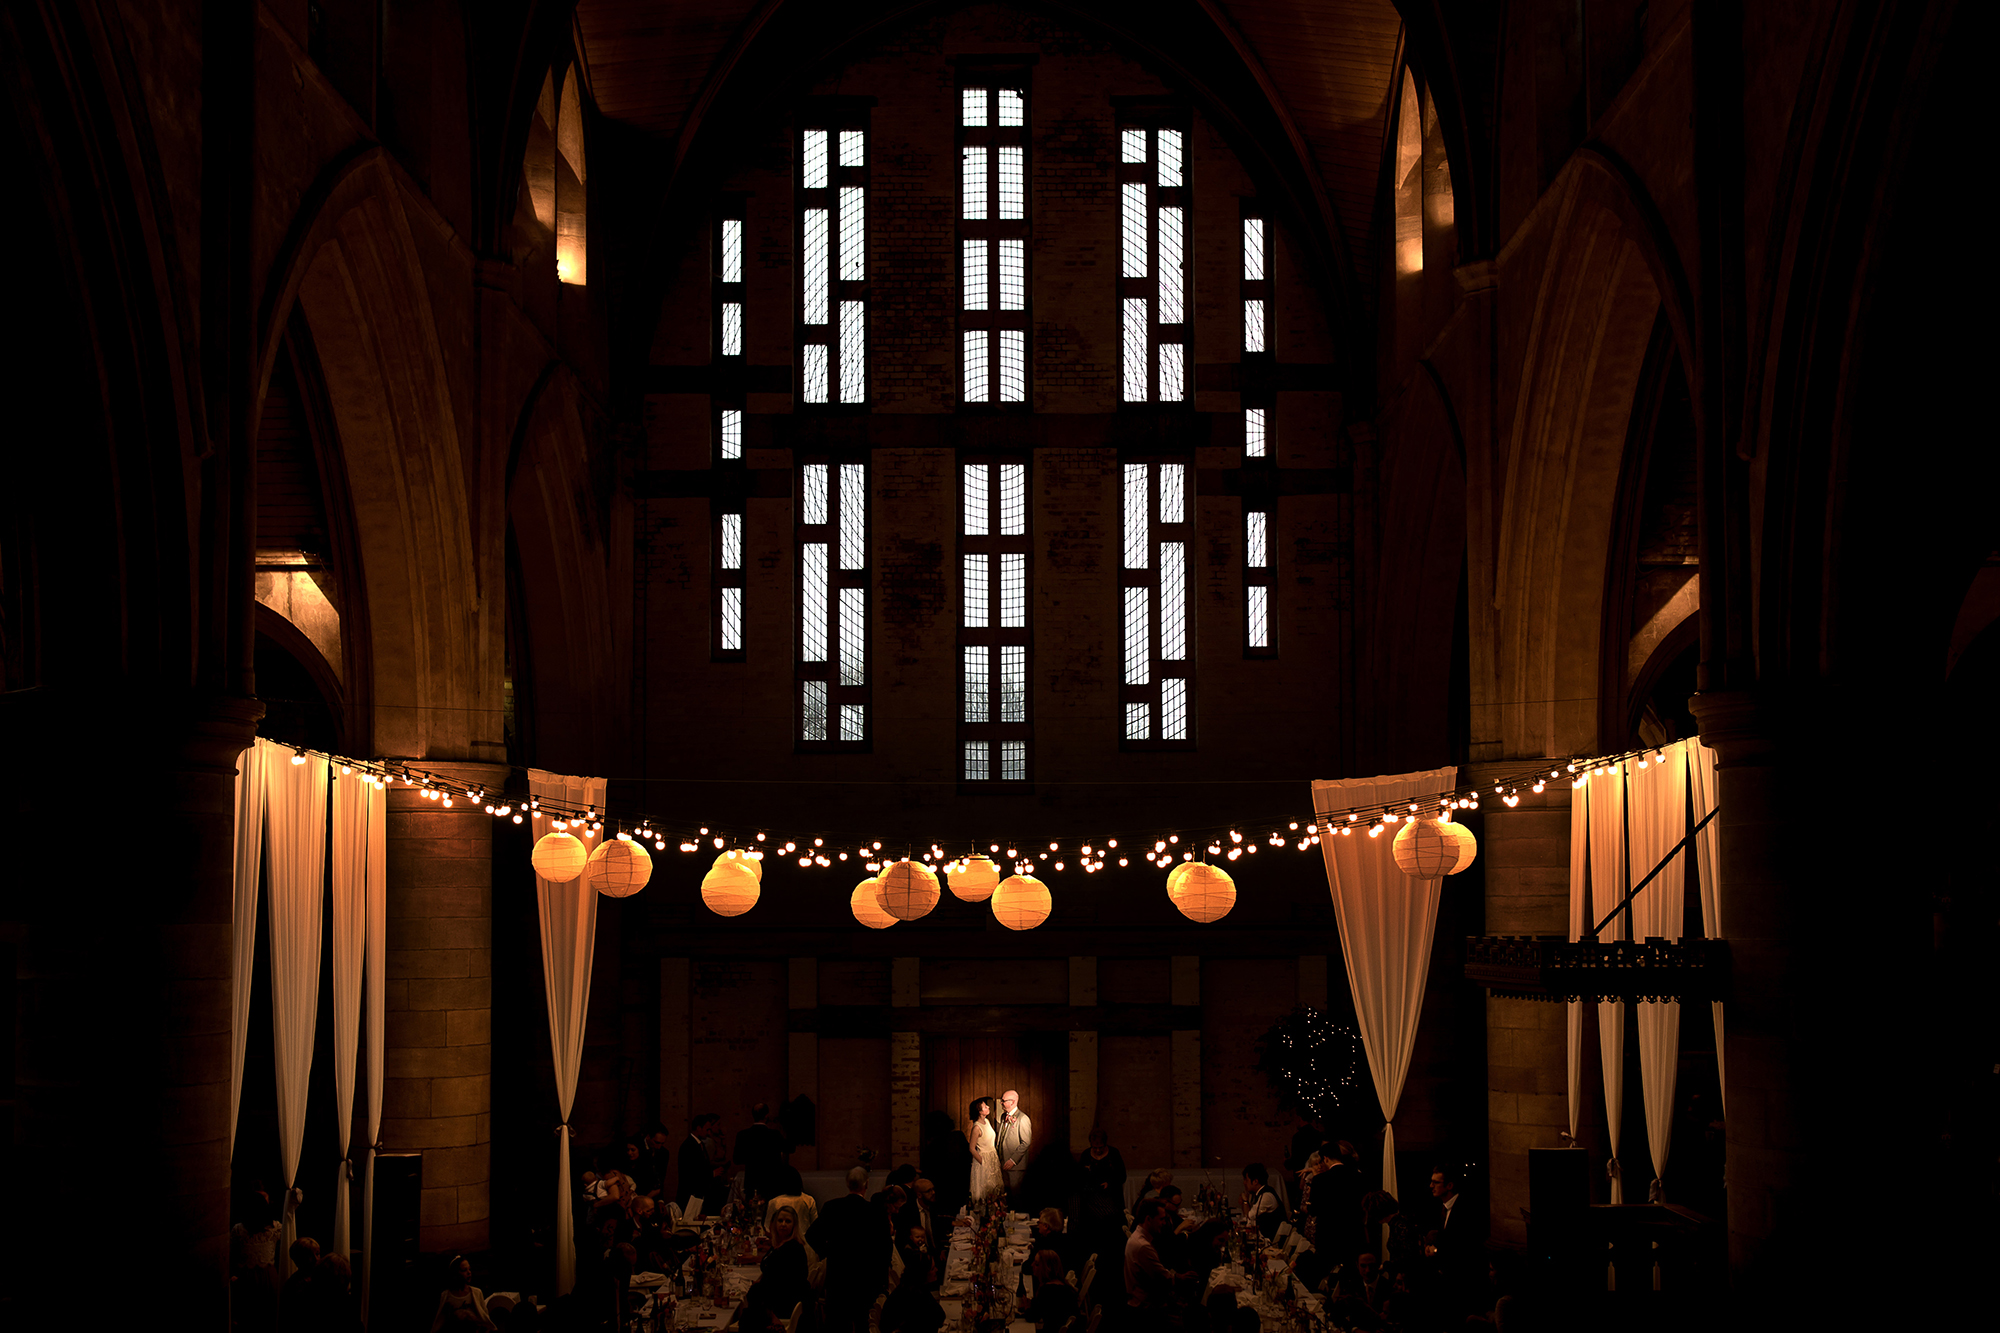 A bride and groom standing in a spotlight below a beautiful church window